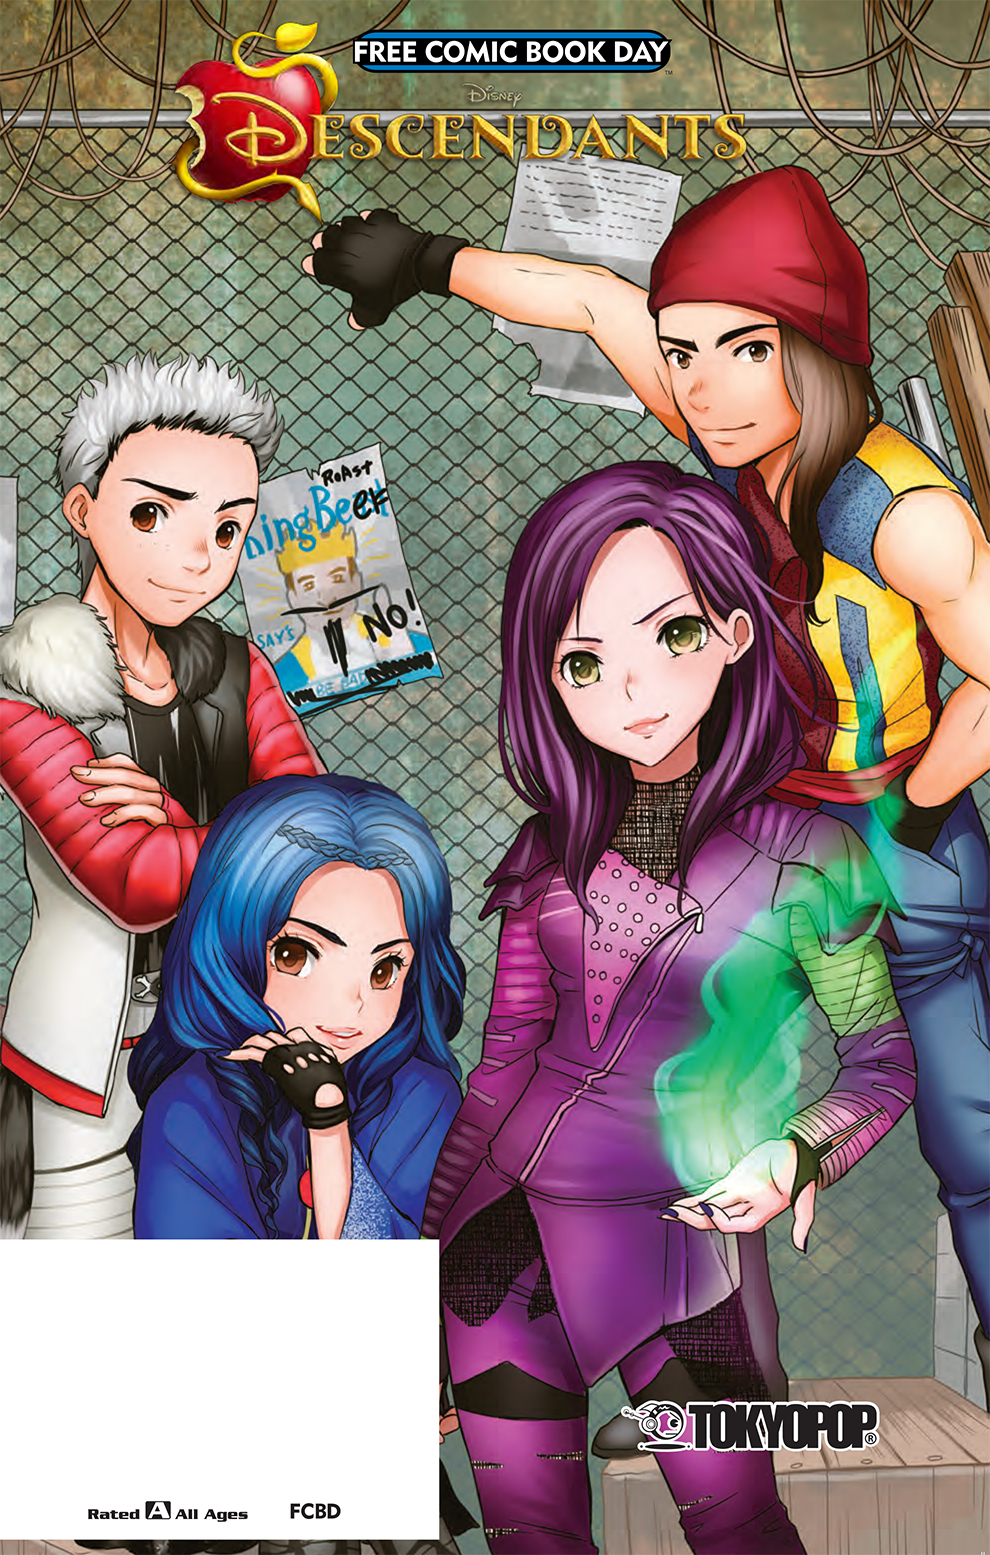 DisneyMangaDescendants